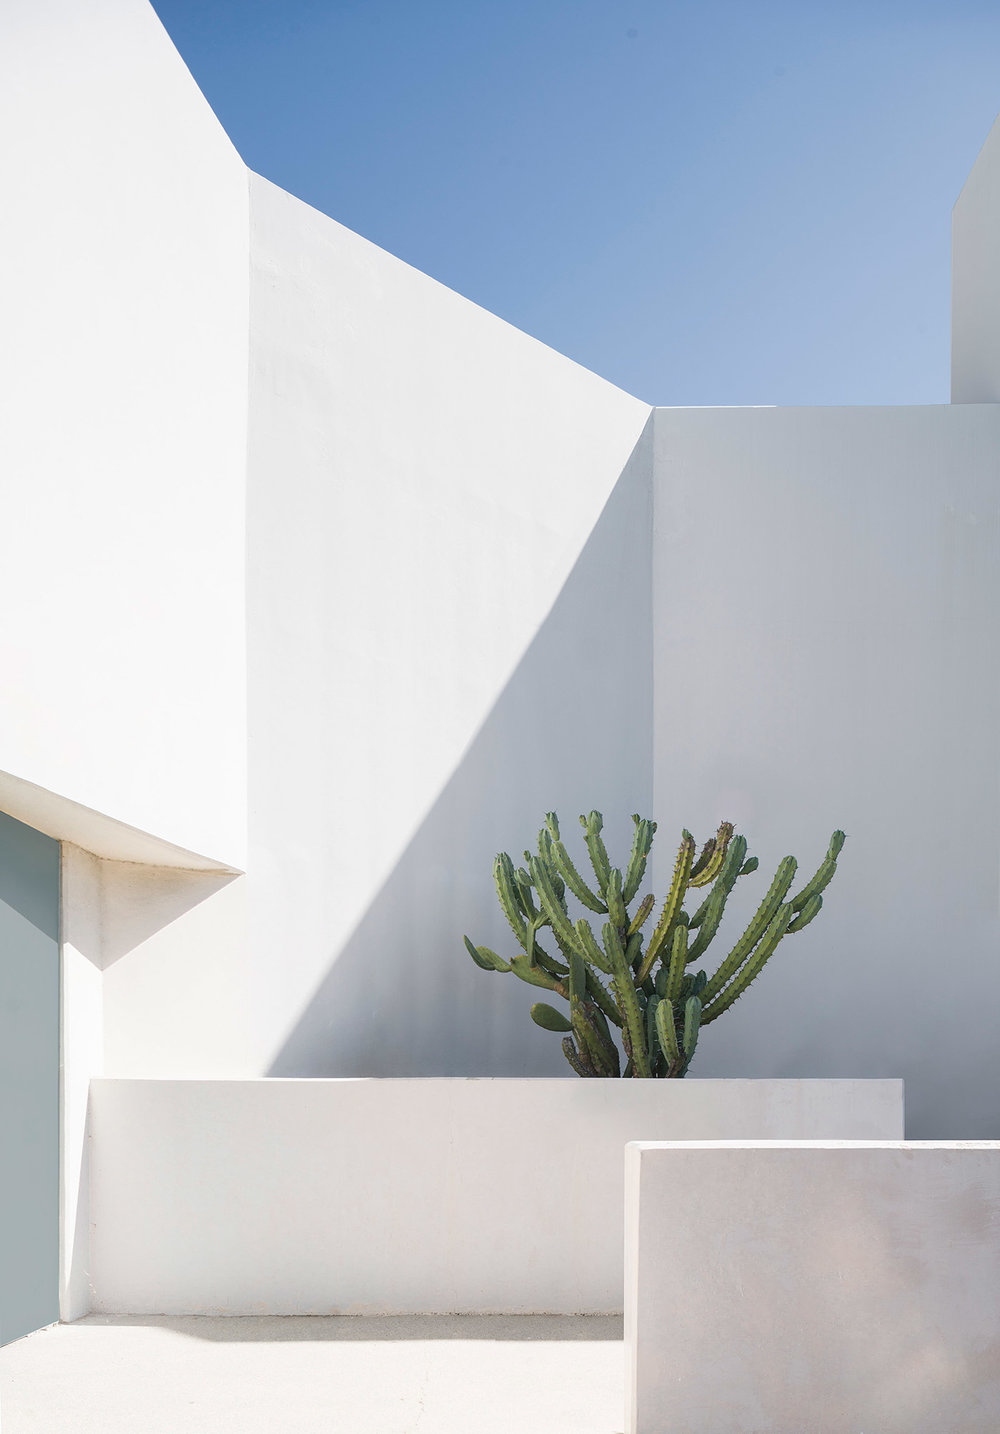 Geometric-Encounters-architecture-concrete-exterior-photography-cool-clean-modern-by-Thismintymoment-Mindsparkle-Mag-3.jpg